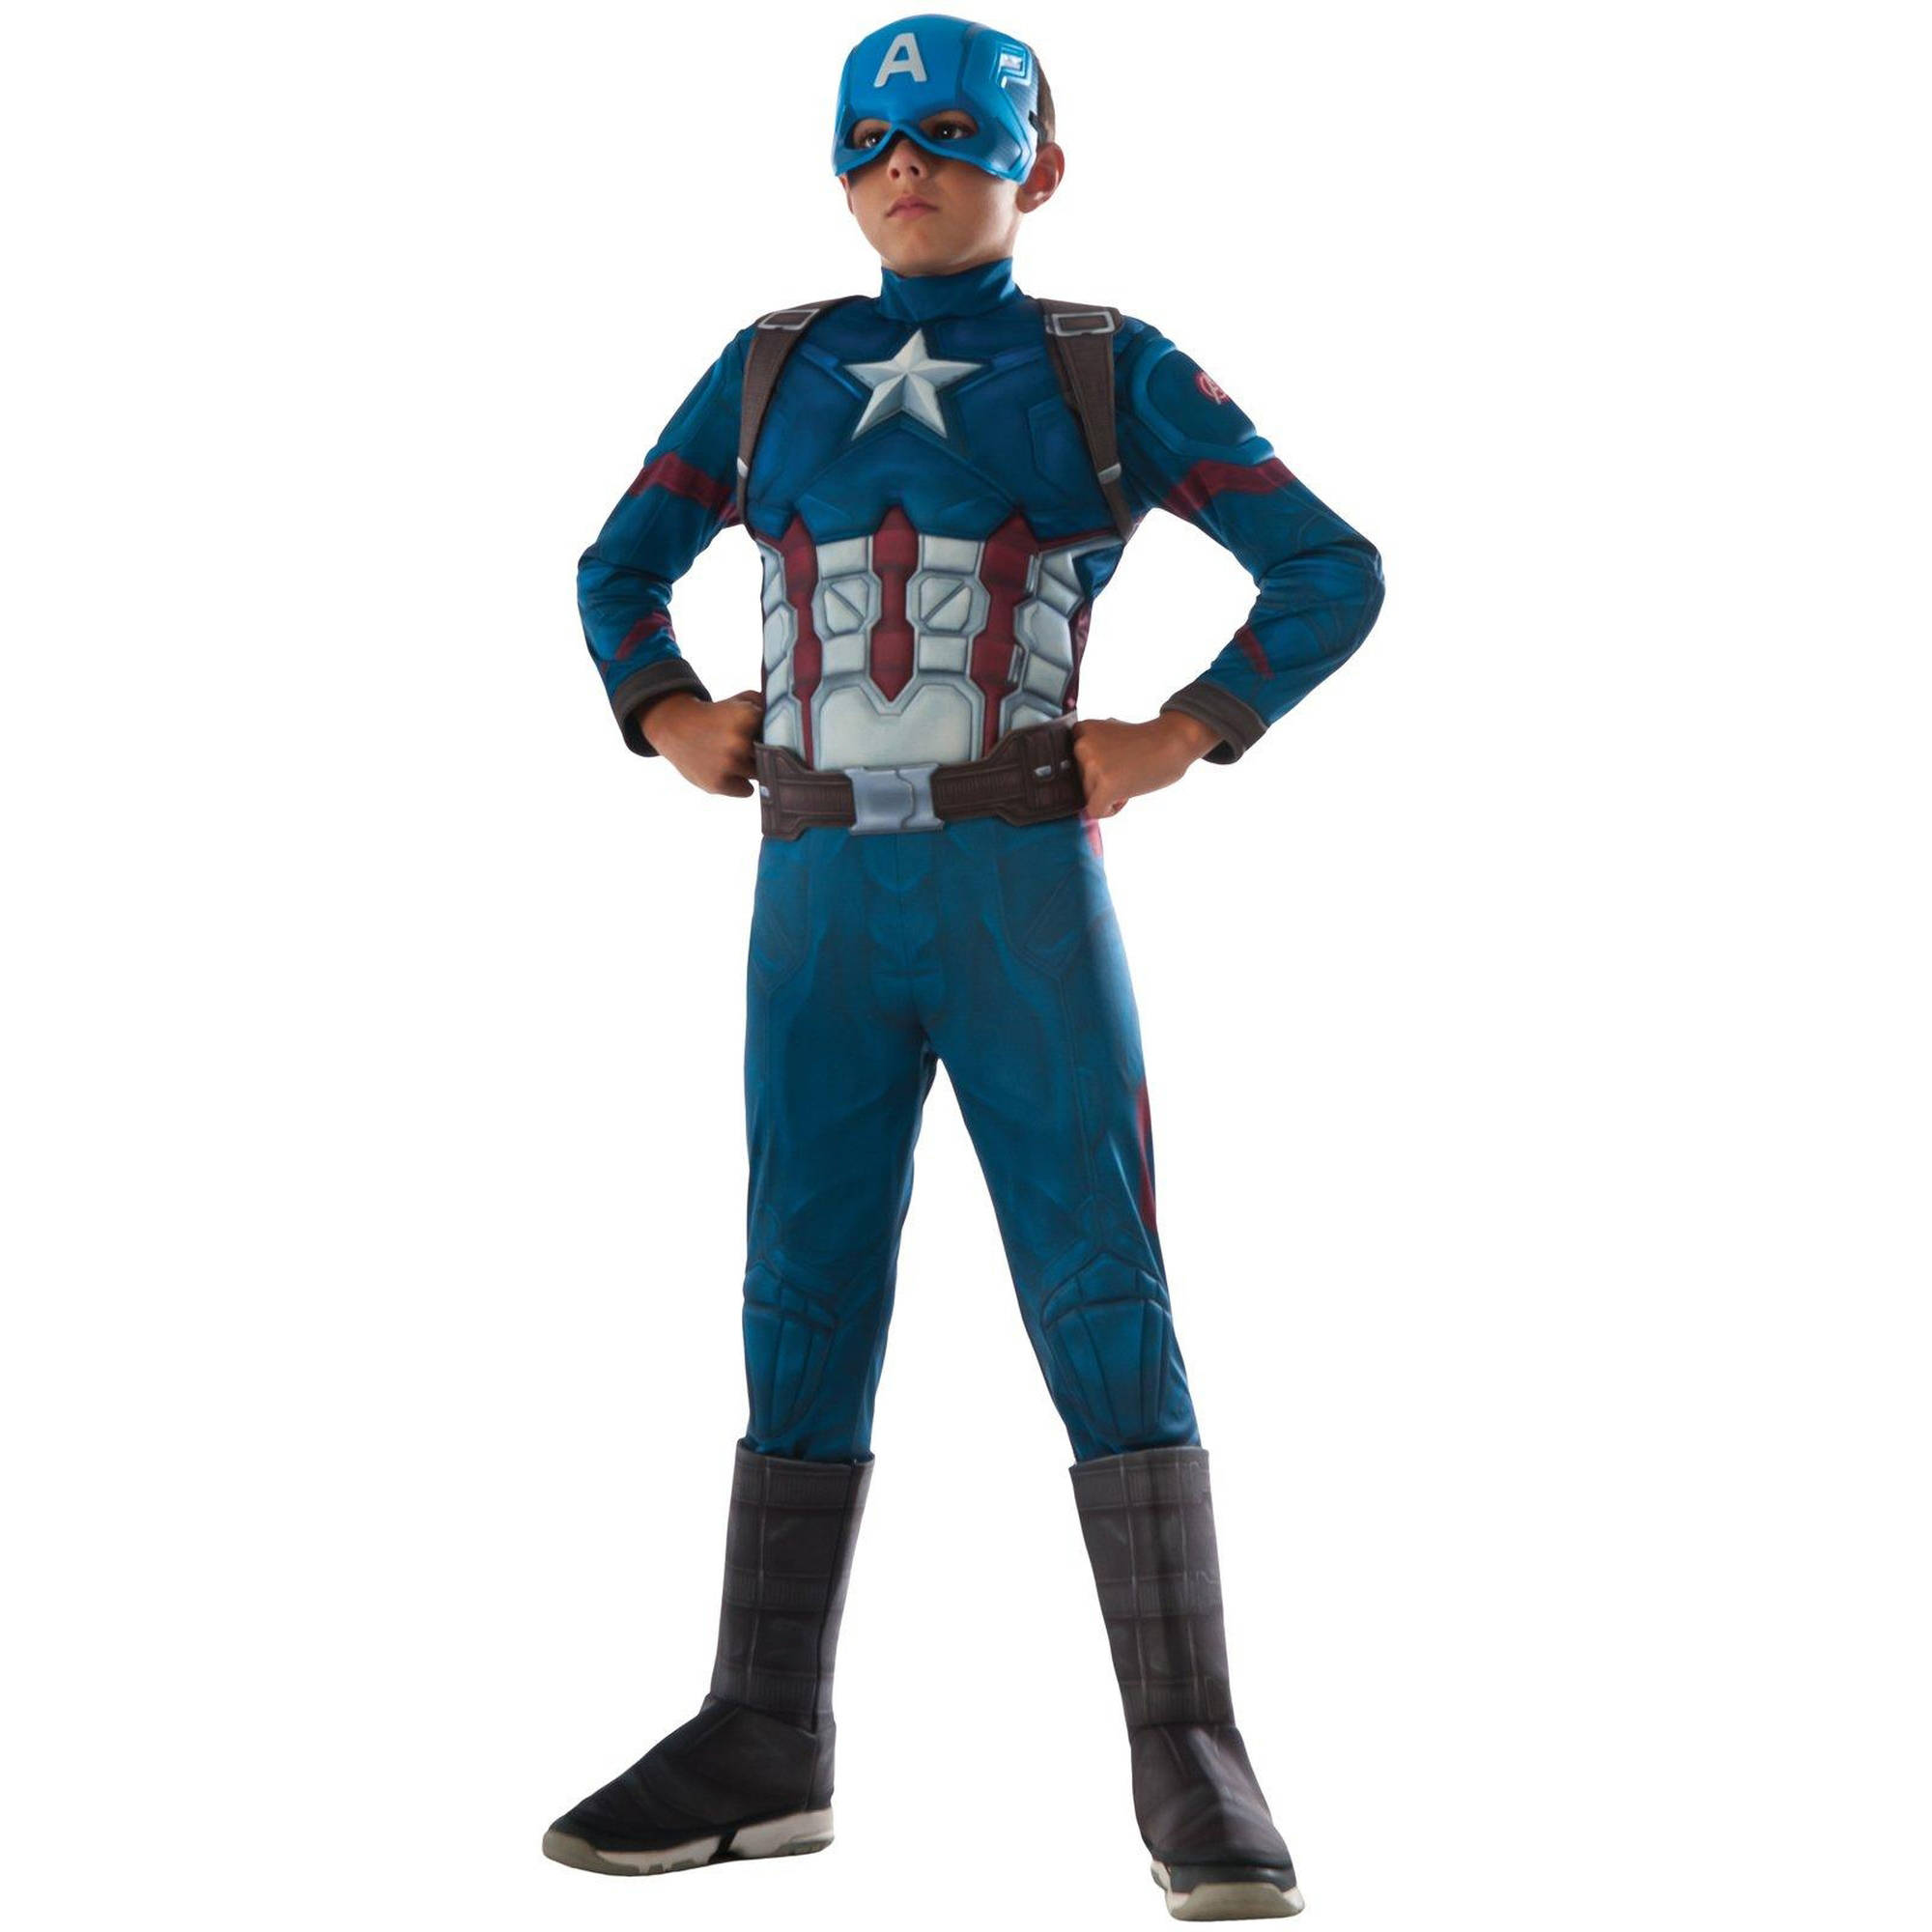 Marvel's Captain America Civil War Muscle Chest Deluxe Captain America Child Halloween Costume